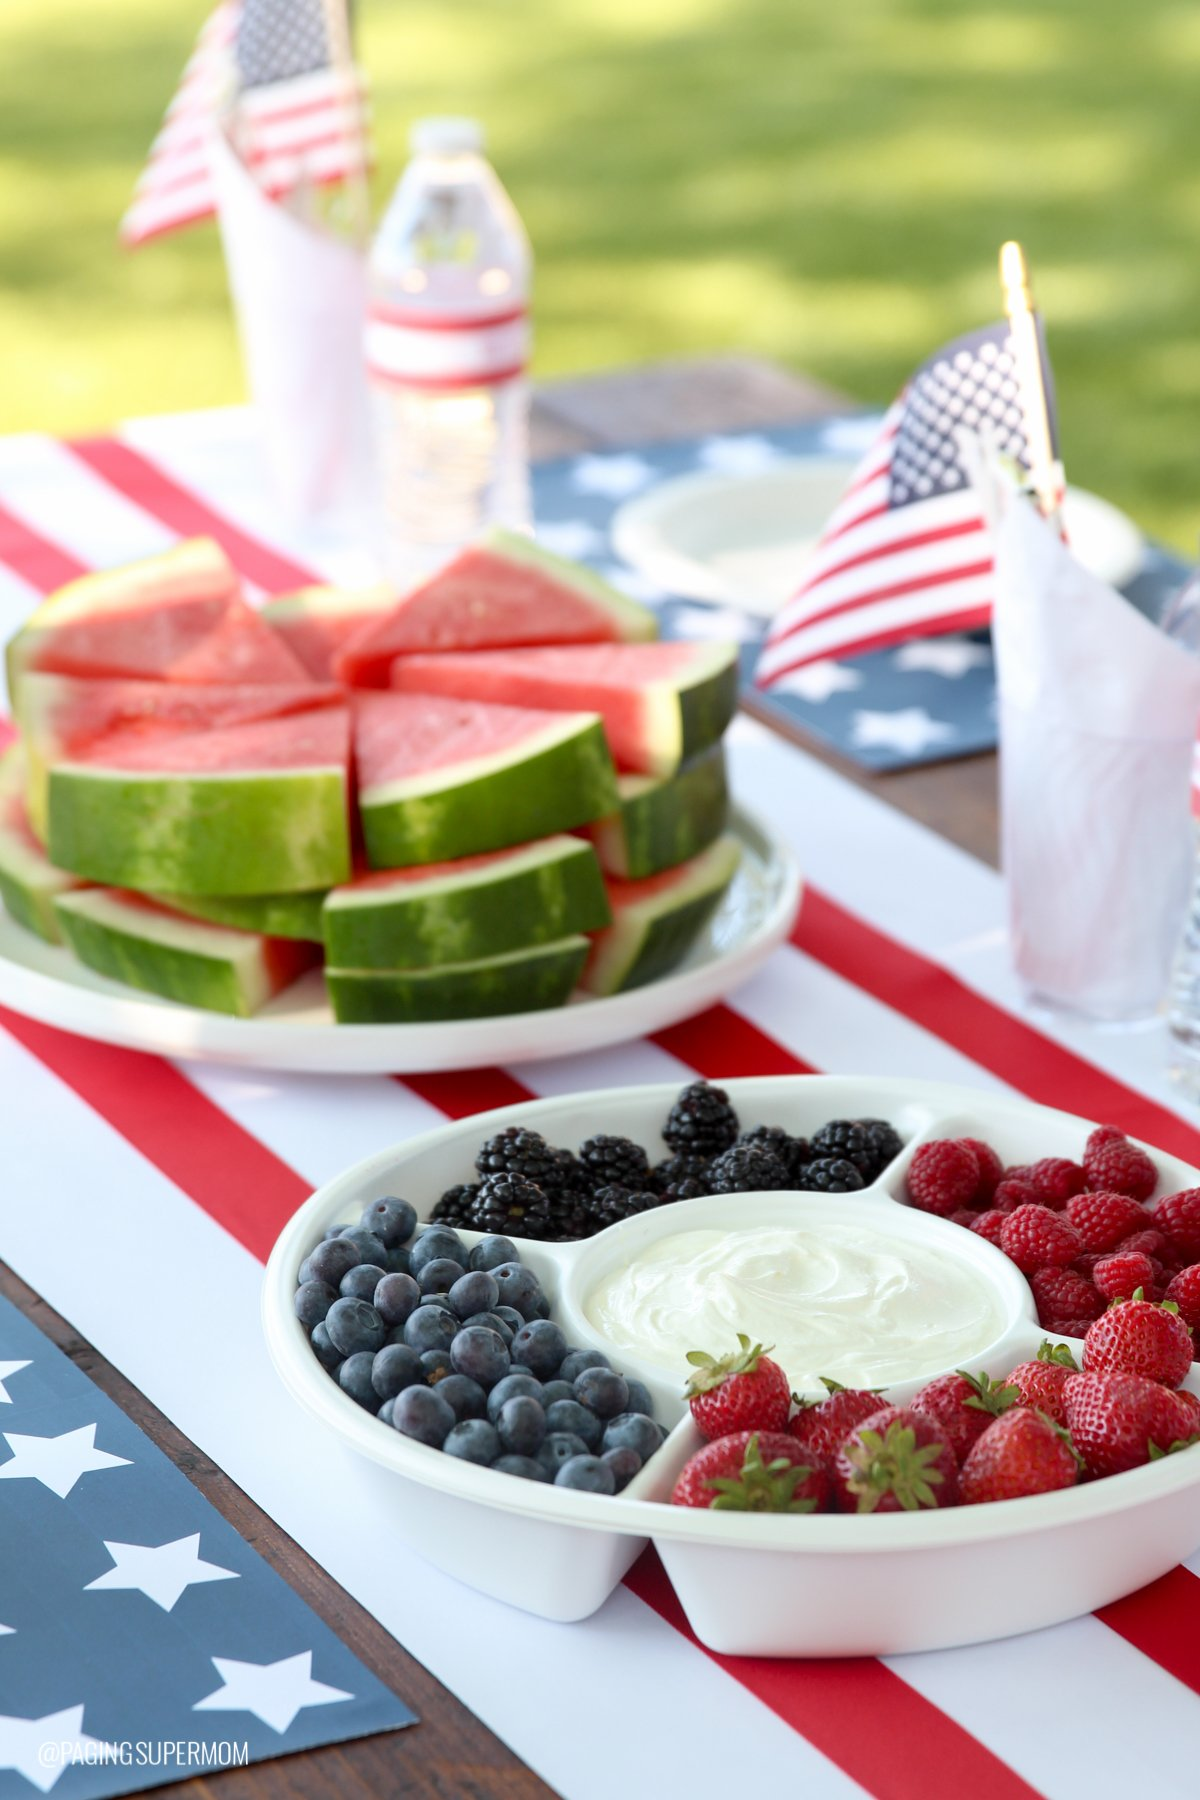 Easy July 4th Table Ideas w/ FREE printables from @PagingSupermom